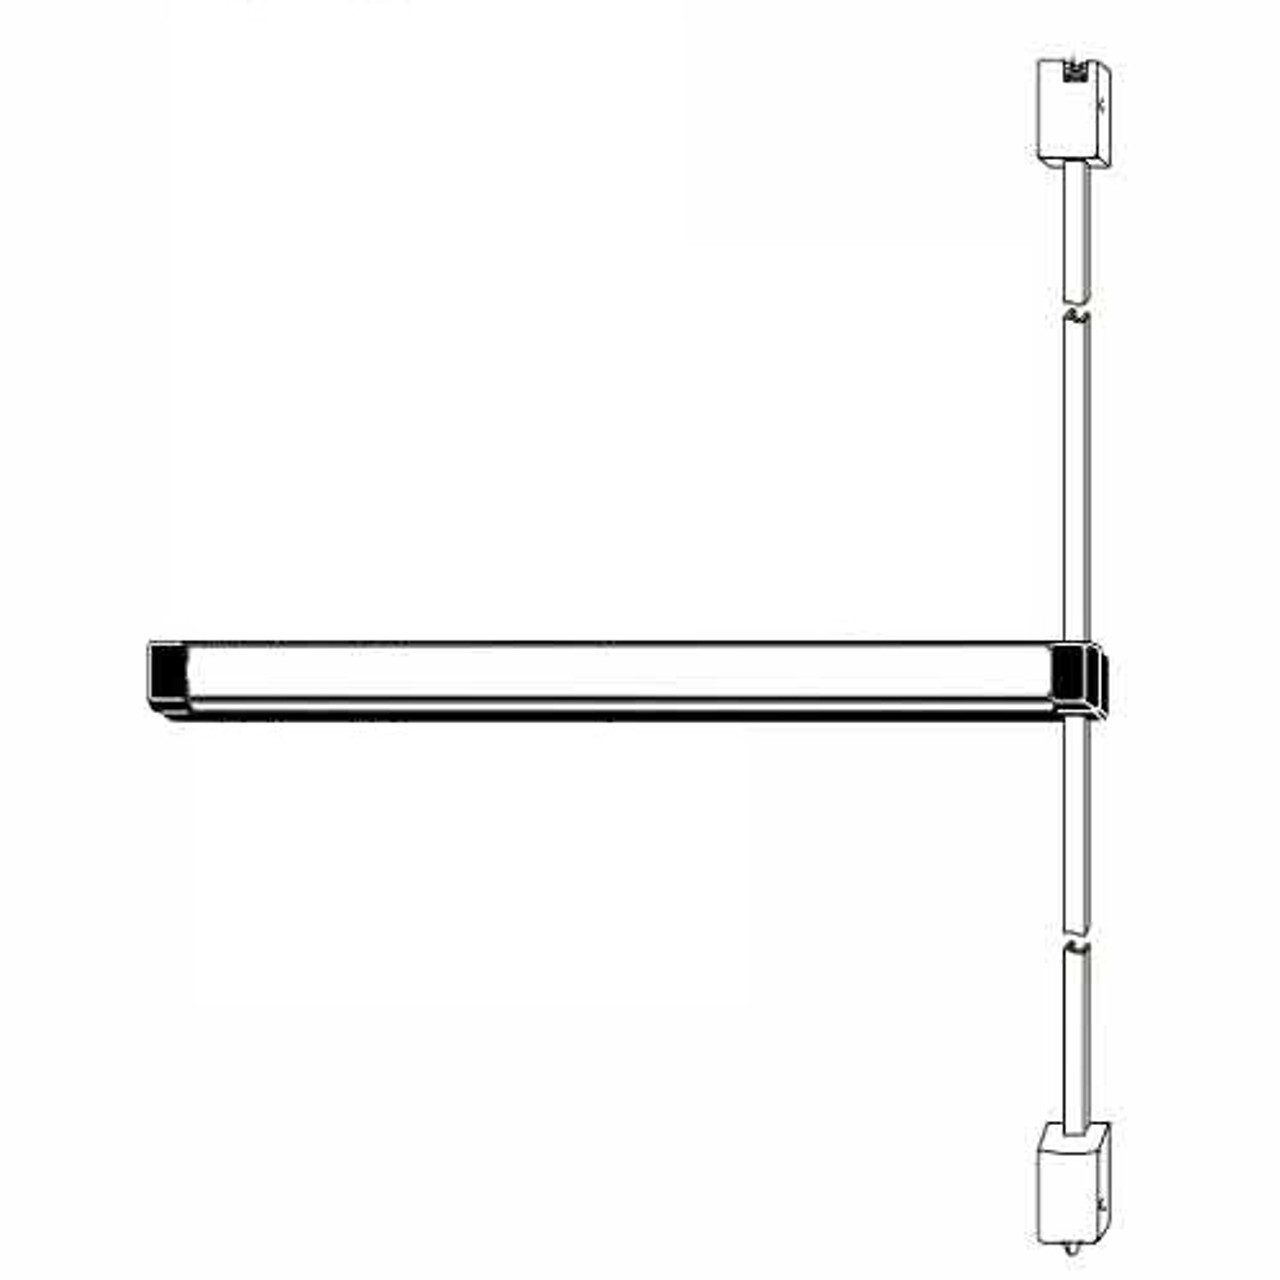 Adams Rite Fire-rated Concealed Vertical Rod Exit Device